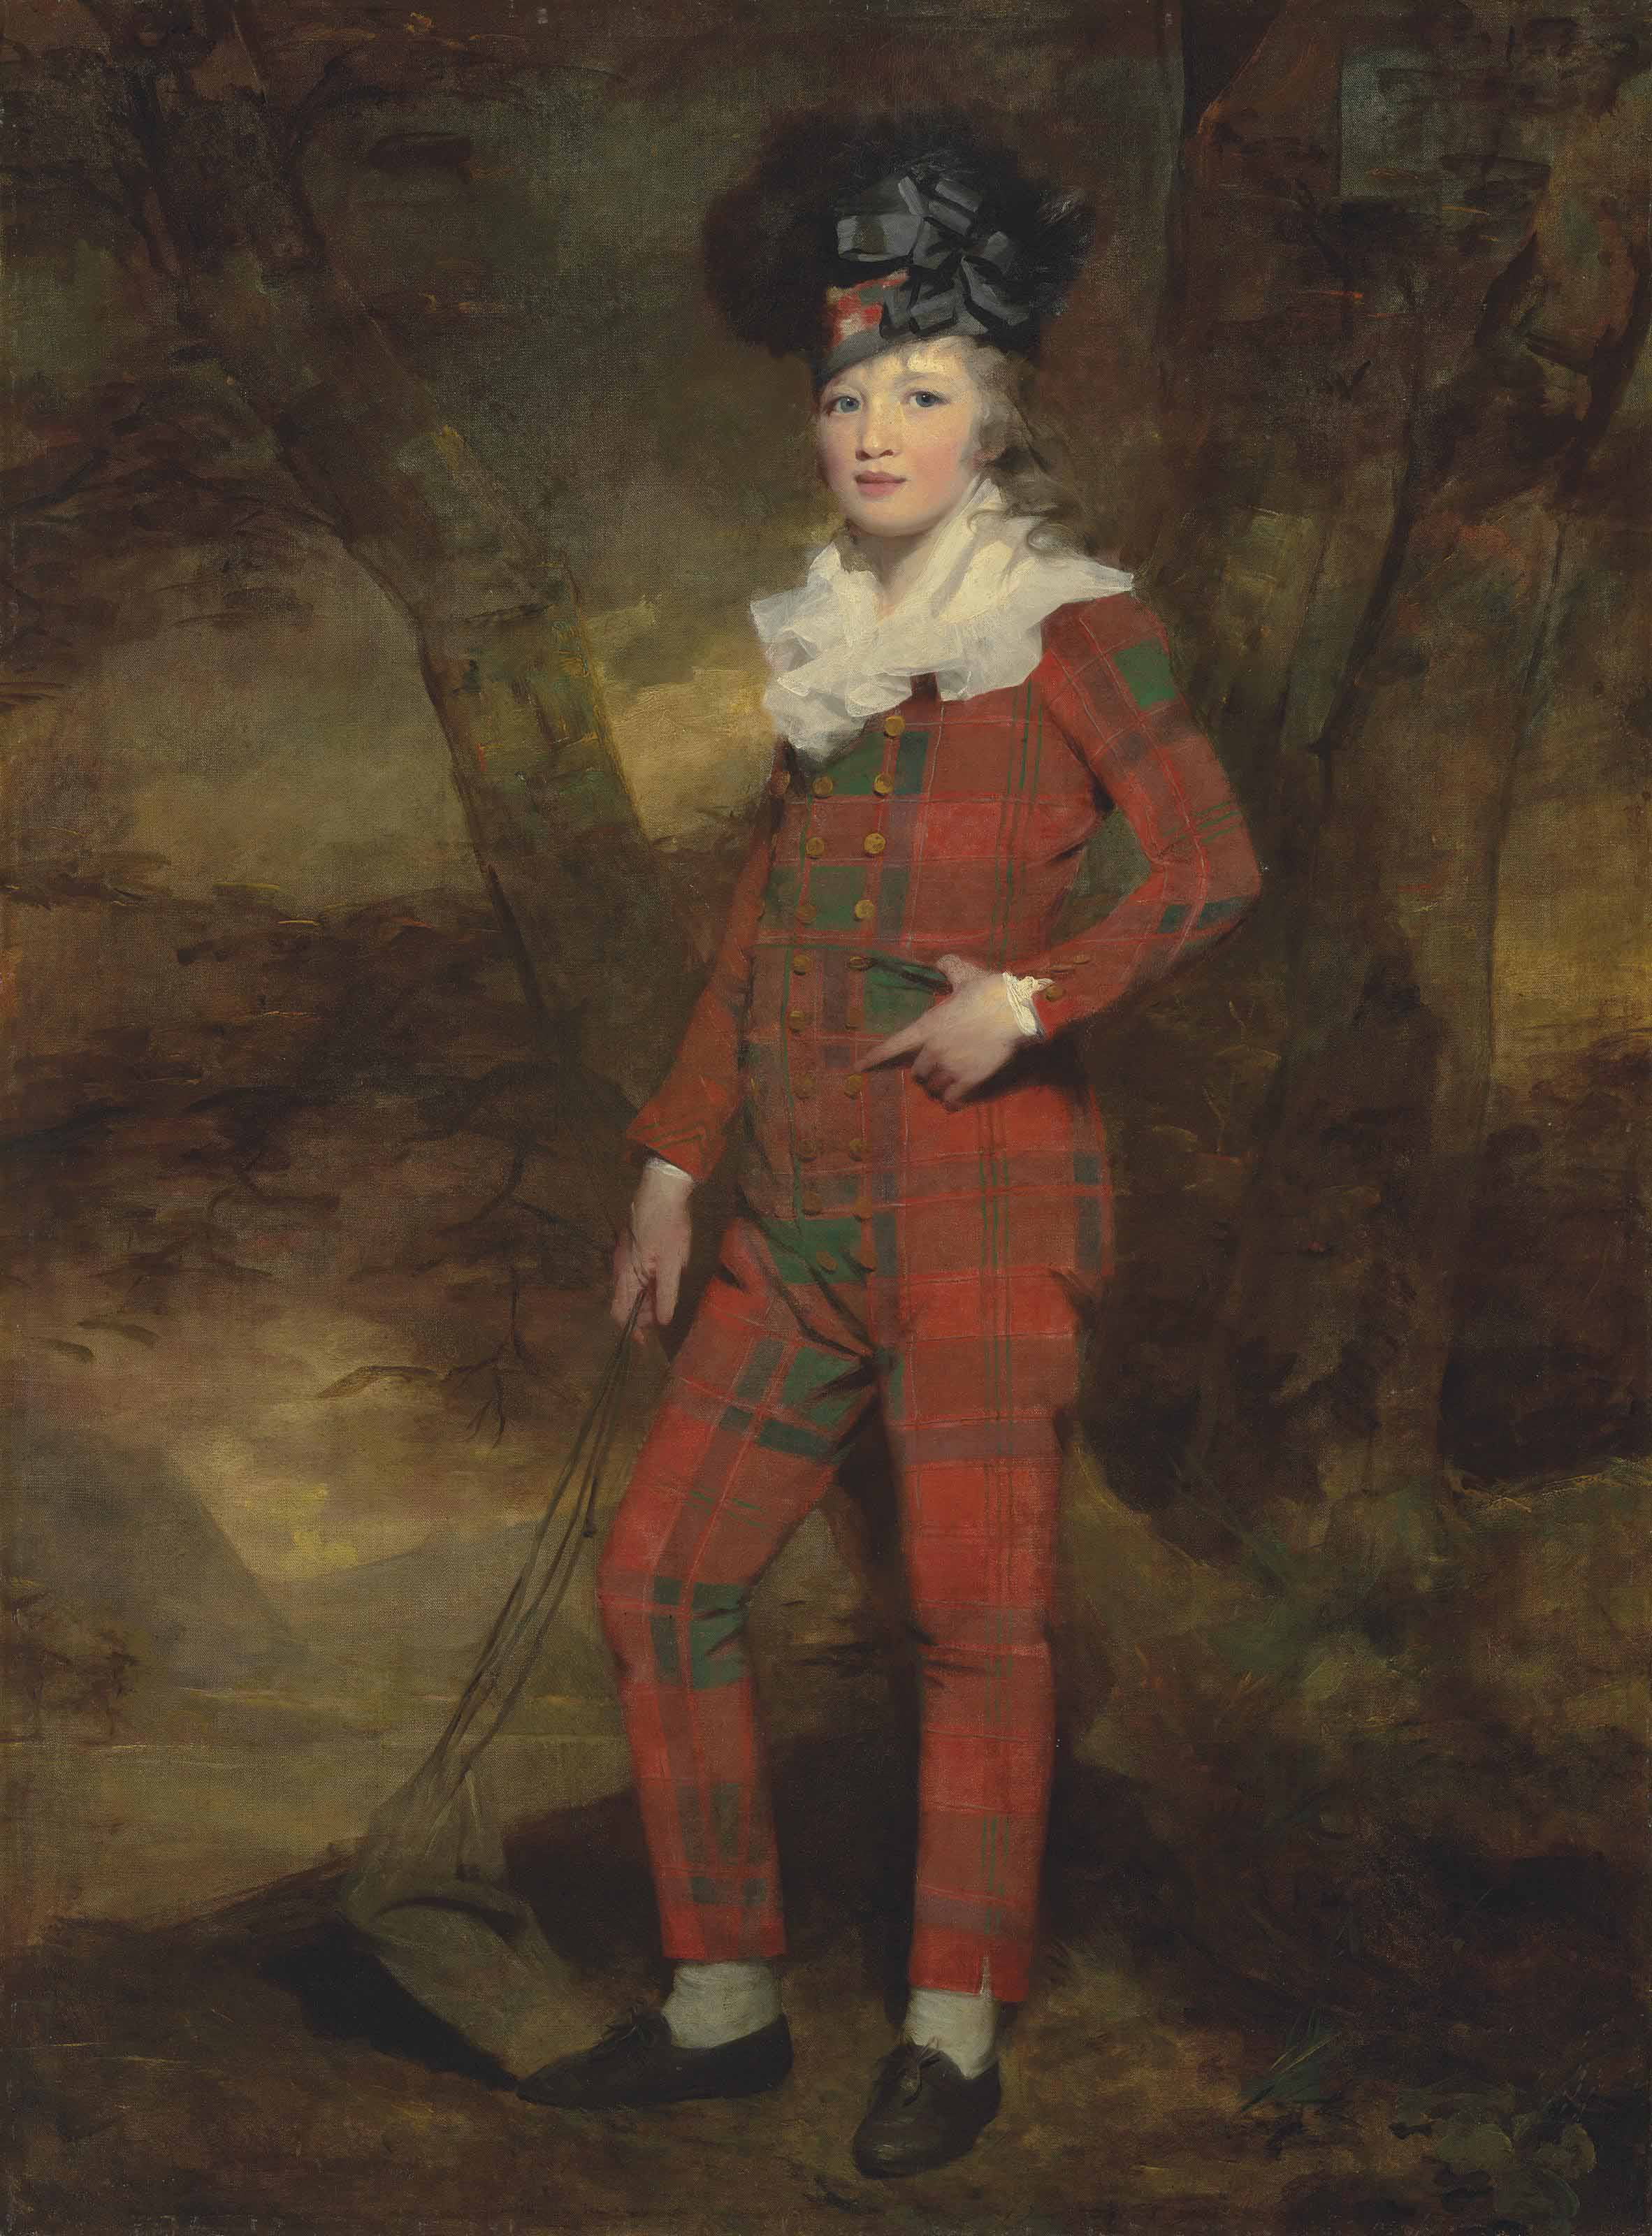 Portrait of Sir Evan Murray-MacGregor of MacGregor, 2nd Bt., K.C.B., K.C.H., 19th Chief of Clan Gregor, as a boy (1785-1841), full-length, in tartan, in a landscape